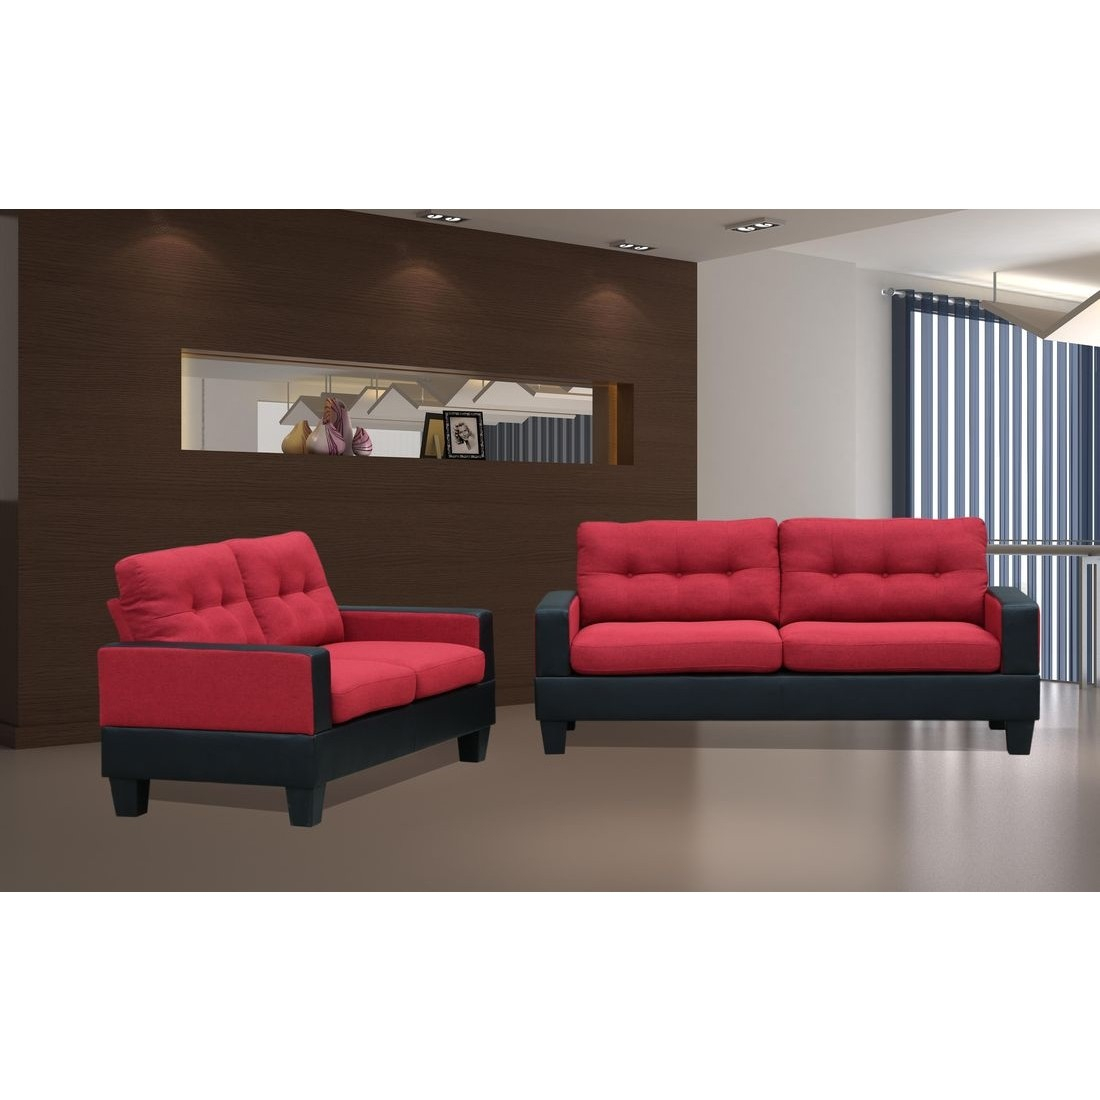 Titanic Furniture U428 2pc Livingroom Set In Redblack with regard to 14 Smart Designs of How to Build Red And Black Living Room Set